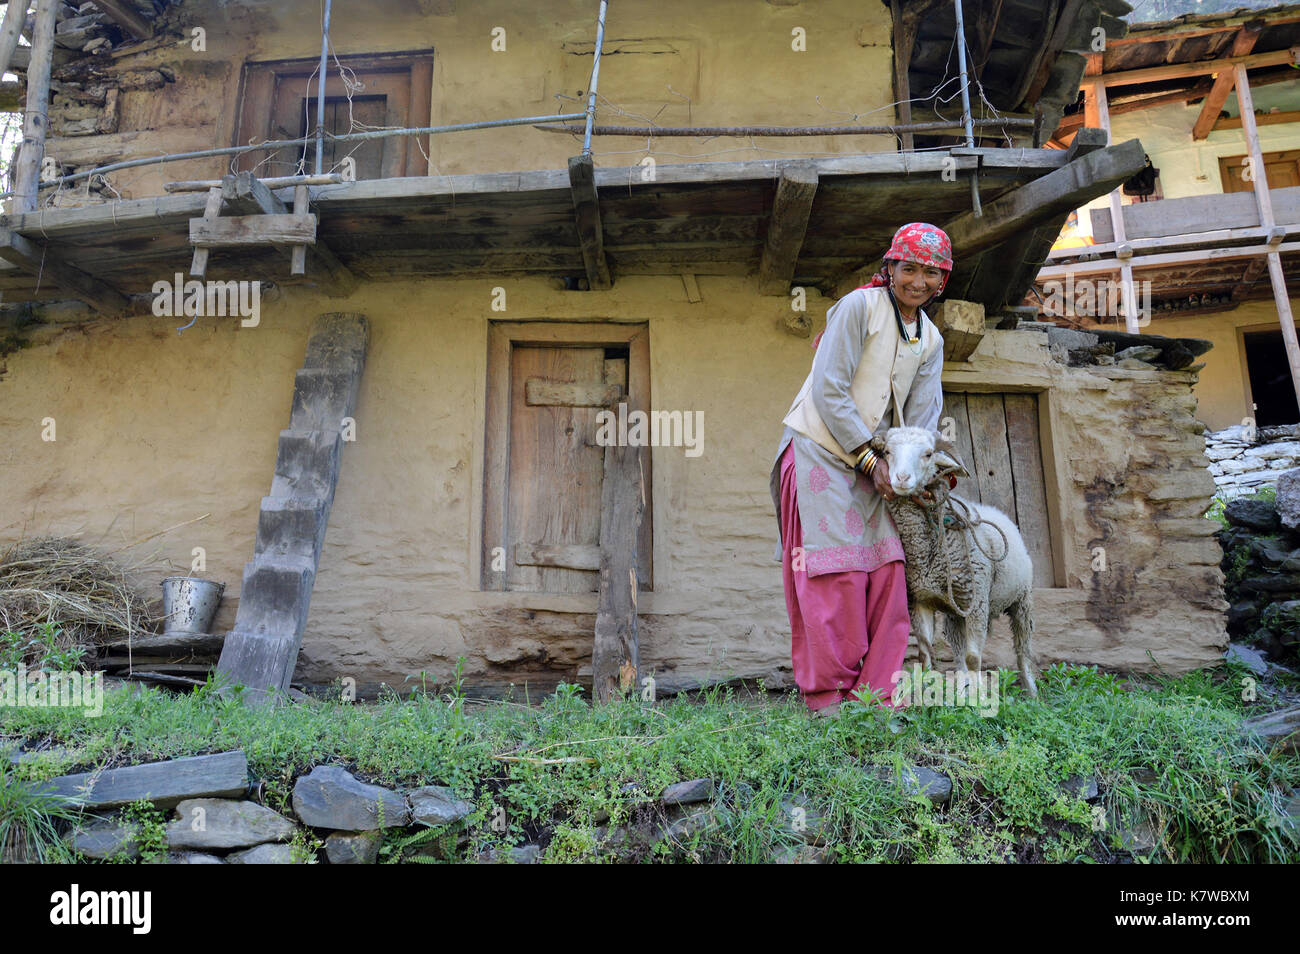 Himachali lady with her sheep standing outside an abandoned house in Shimla, Himachal Pradesh, India. - Stock Image